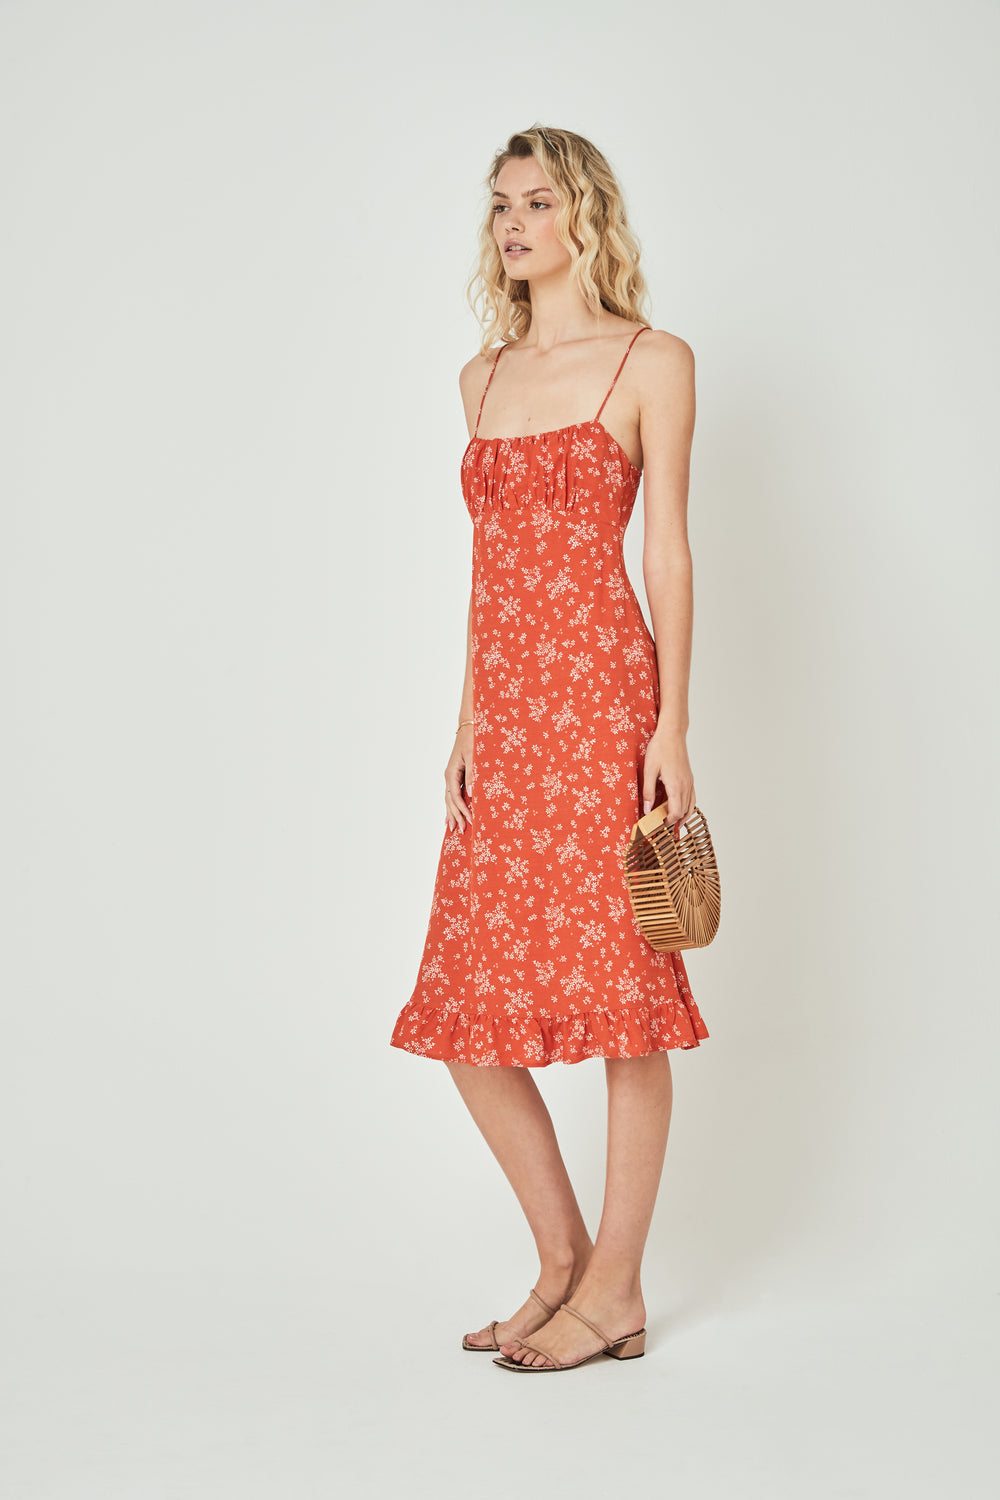 Side view of the Auguste - Meave Davis Midi Dress in Orange with white floral